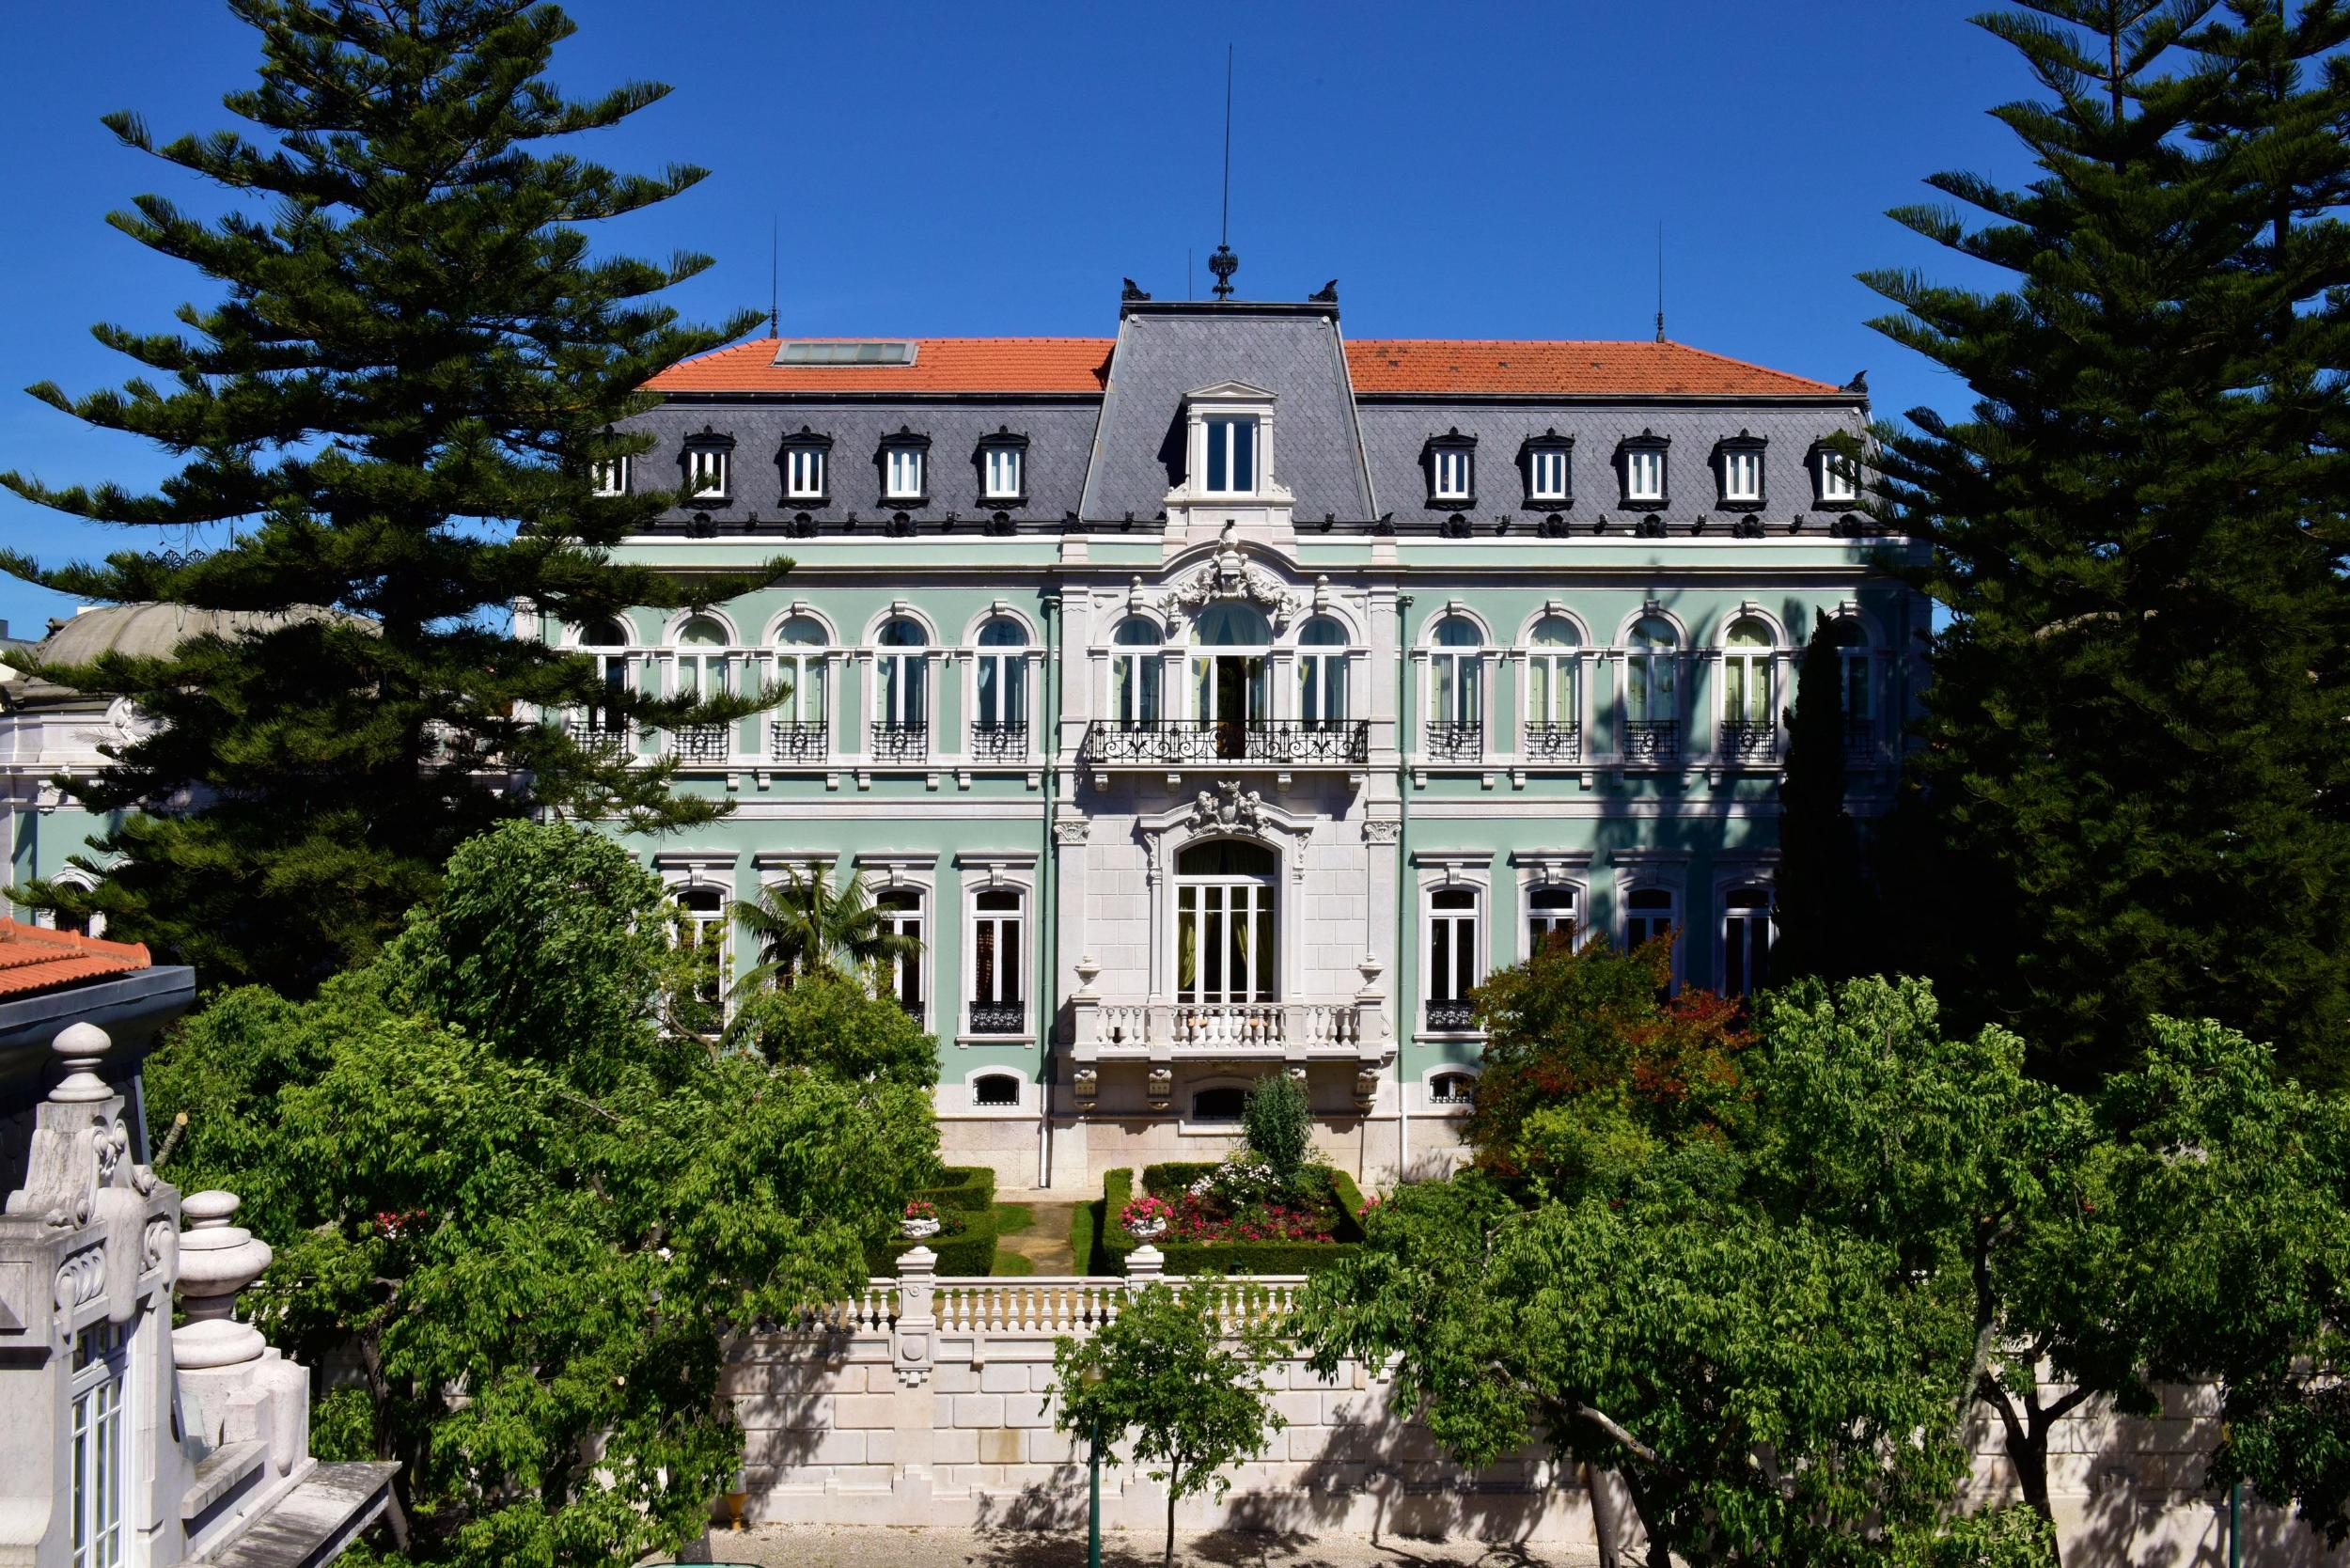 Pestana Palace Hotel and National Monument